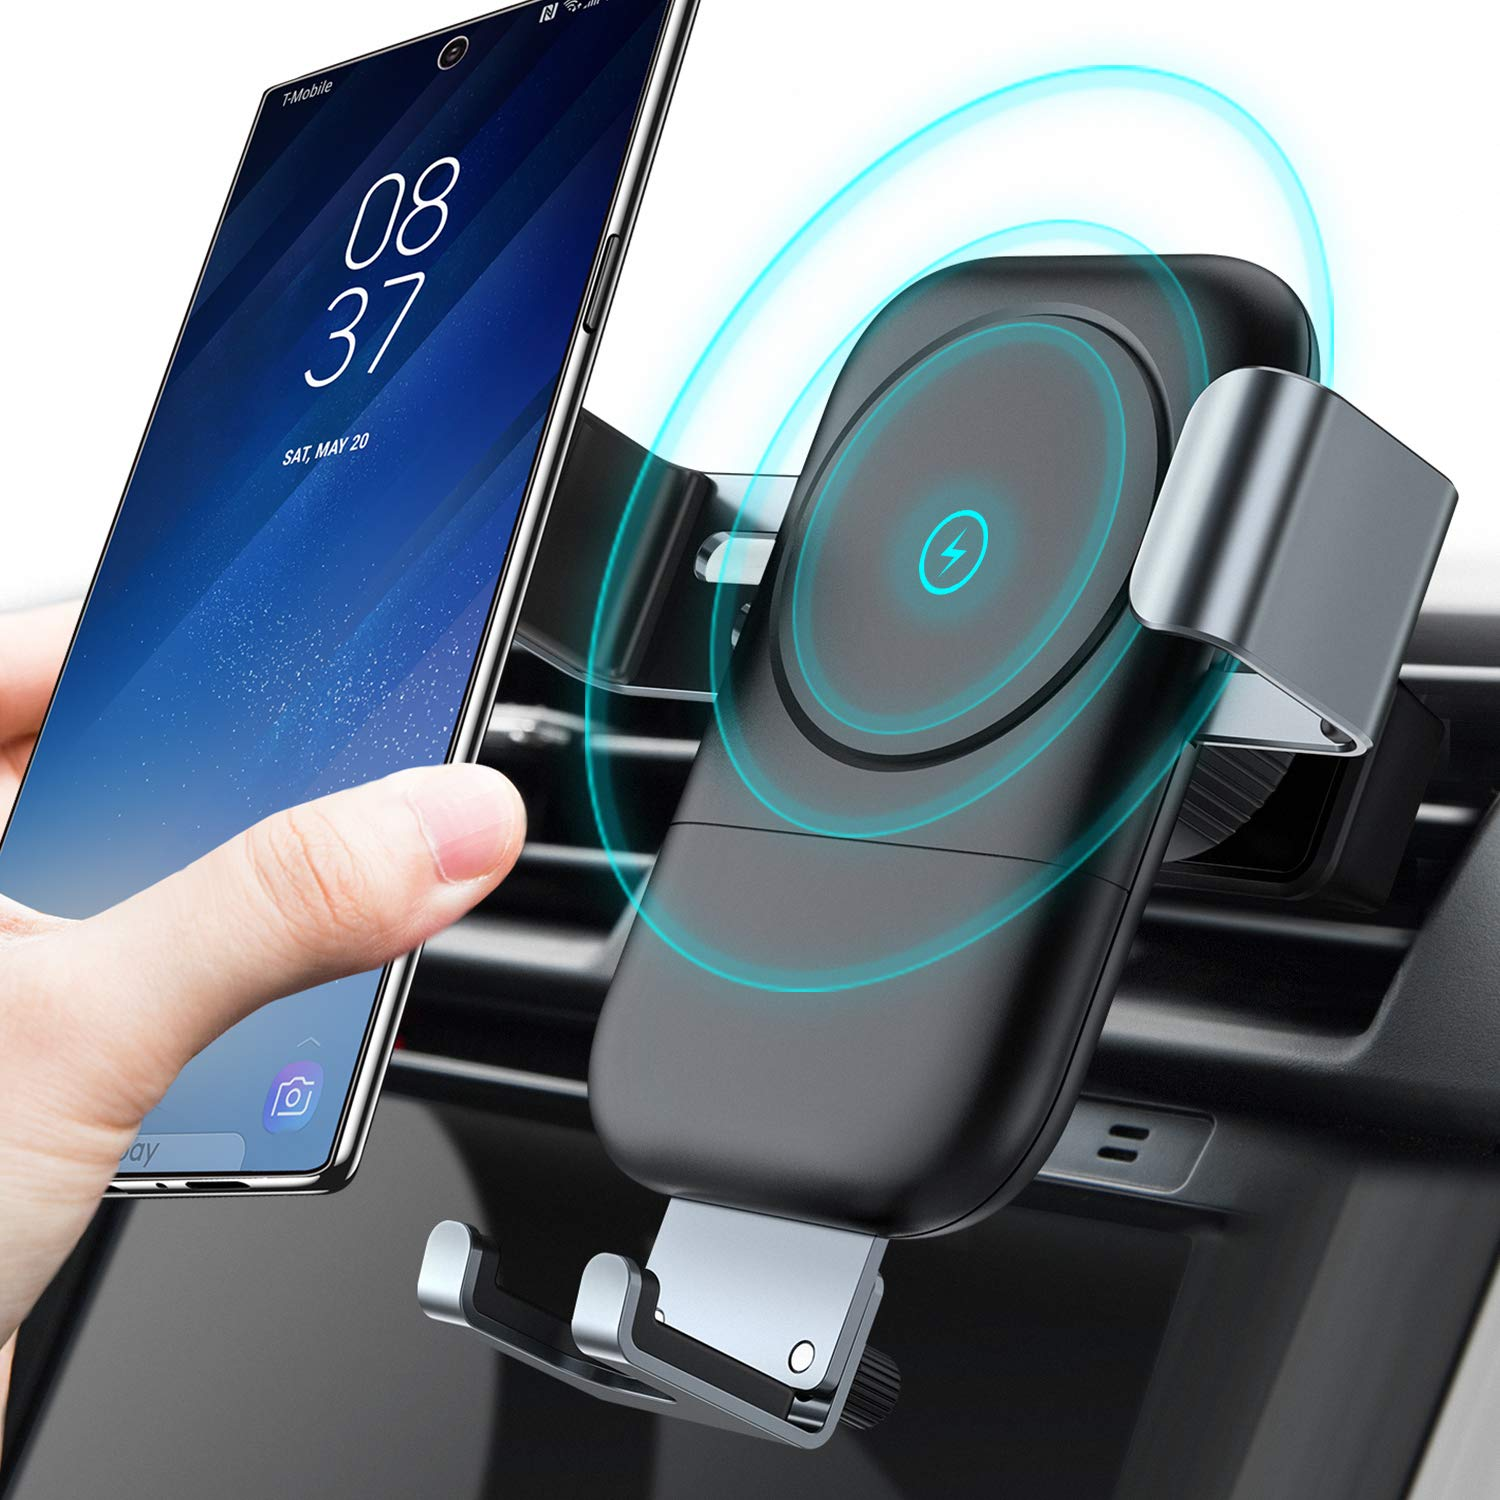 TORRAS Wireless Car Charger Mount, Auto-Clamping Gravity Fast Cell Phone Charger Holder Compatible with iPhone 11 Pro Max/Xs/Xs Max/XR/X / 8/8 Plus, Galaxy Note 10 / S10 / S9+ / S8, More by TORRAS